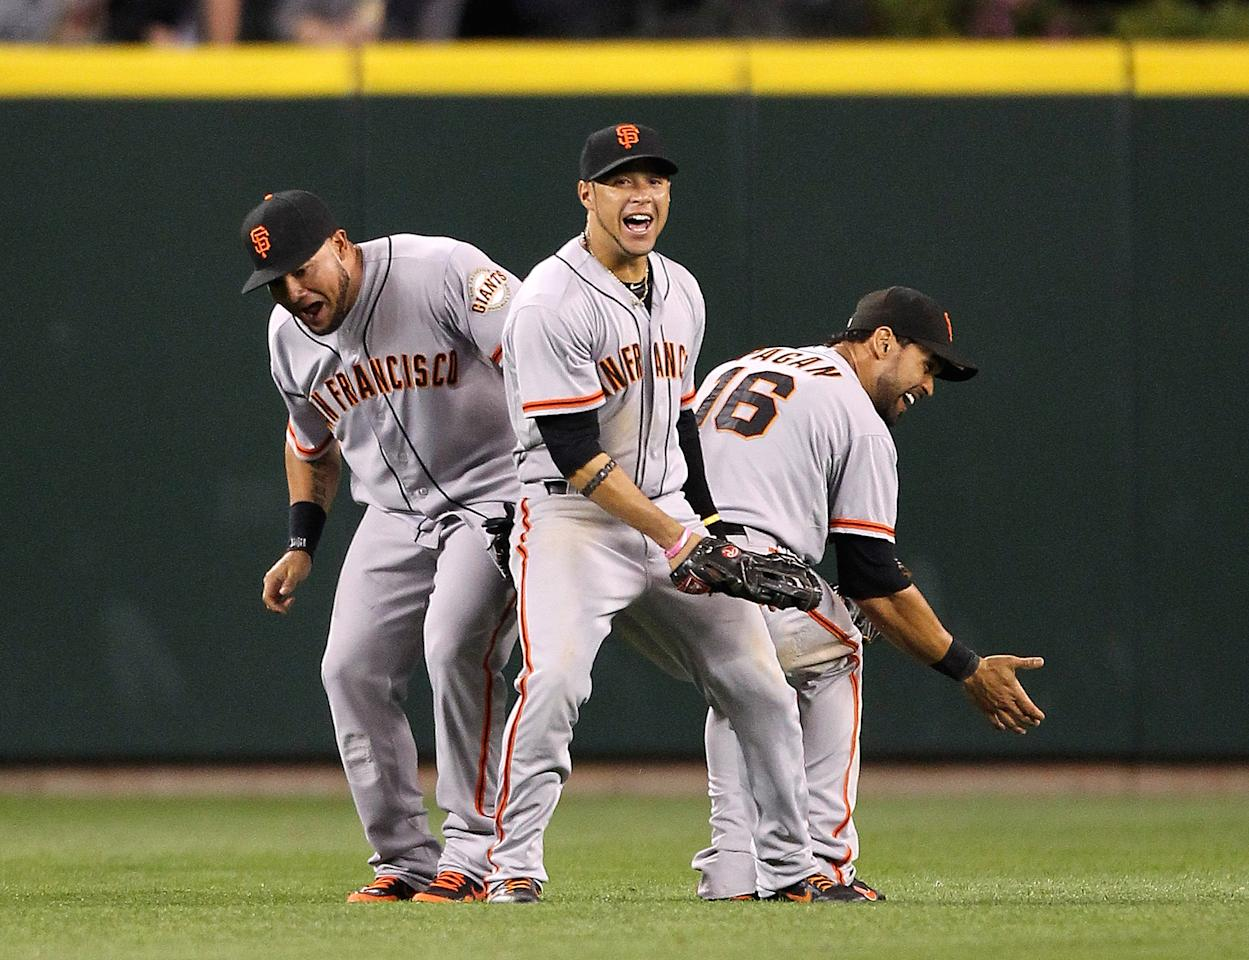 SEATTLE, WA - JUNE 15:  L to R: Melky Cabrera #53, Gregor Blanco #7, and Angel Pagan #16 of the San Francisco Giants celebrate after defeating the Seattle Mariners 4-2 at Safeco Field on June 15, 2012 in Seattle, Washington. (Photo by Otto Greule Jr/Getty Images)